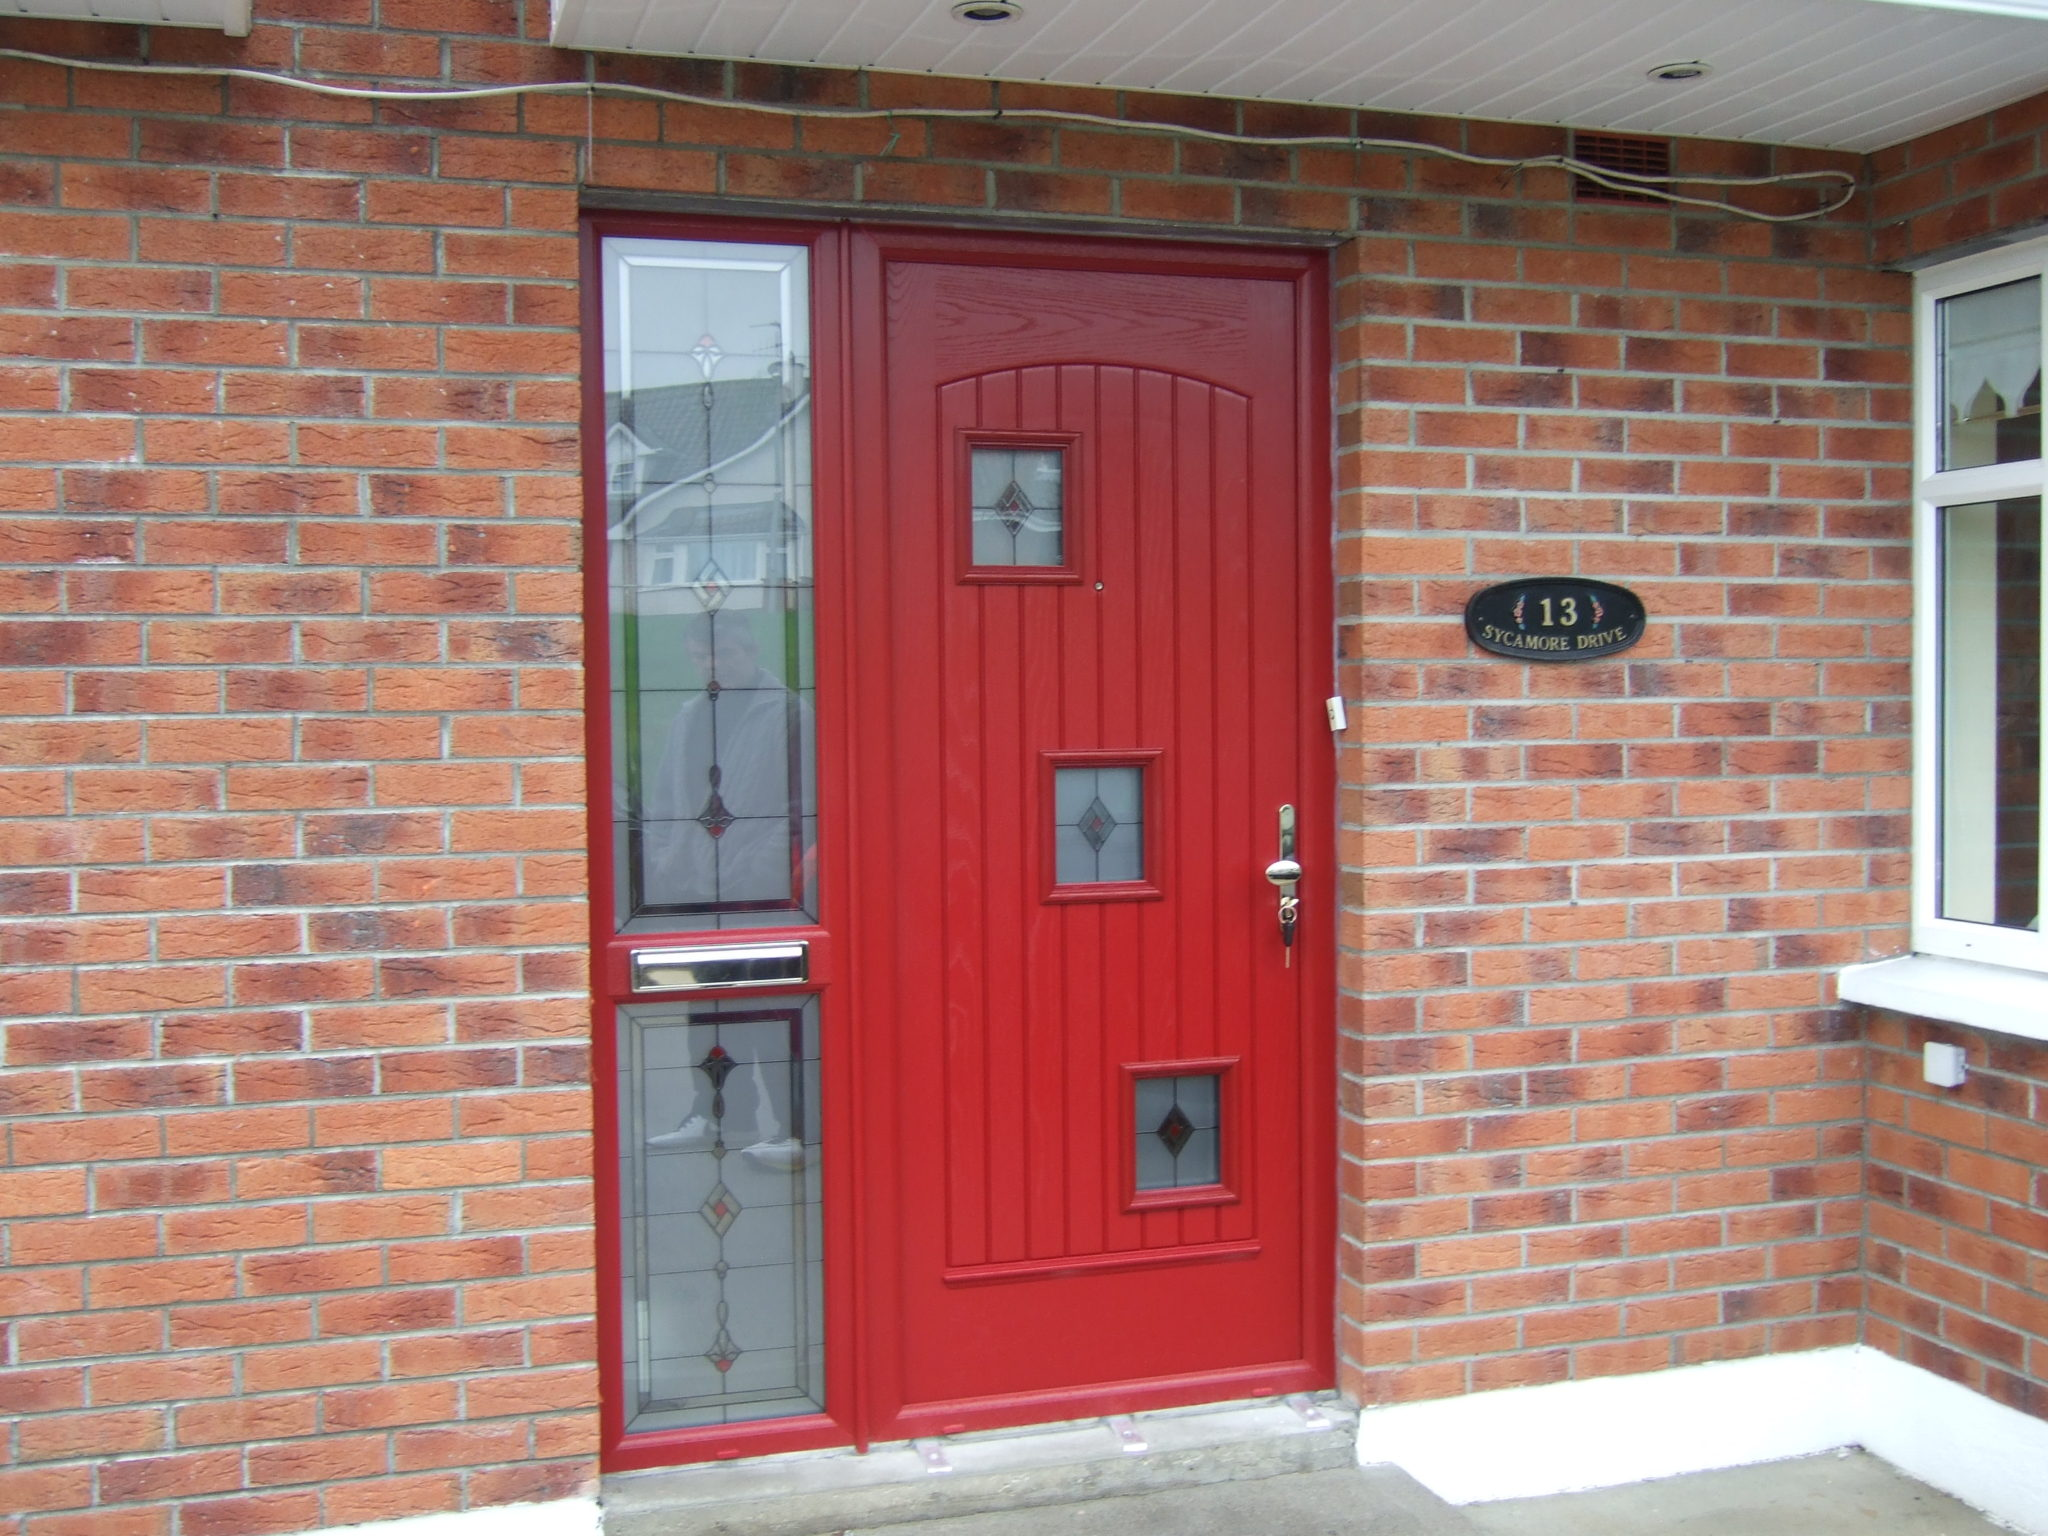 London Door, Palladio Door, Composite Door, Entrance Door, Front Door